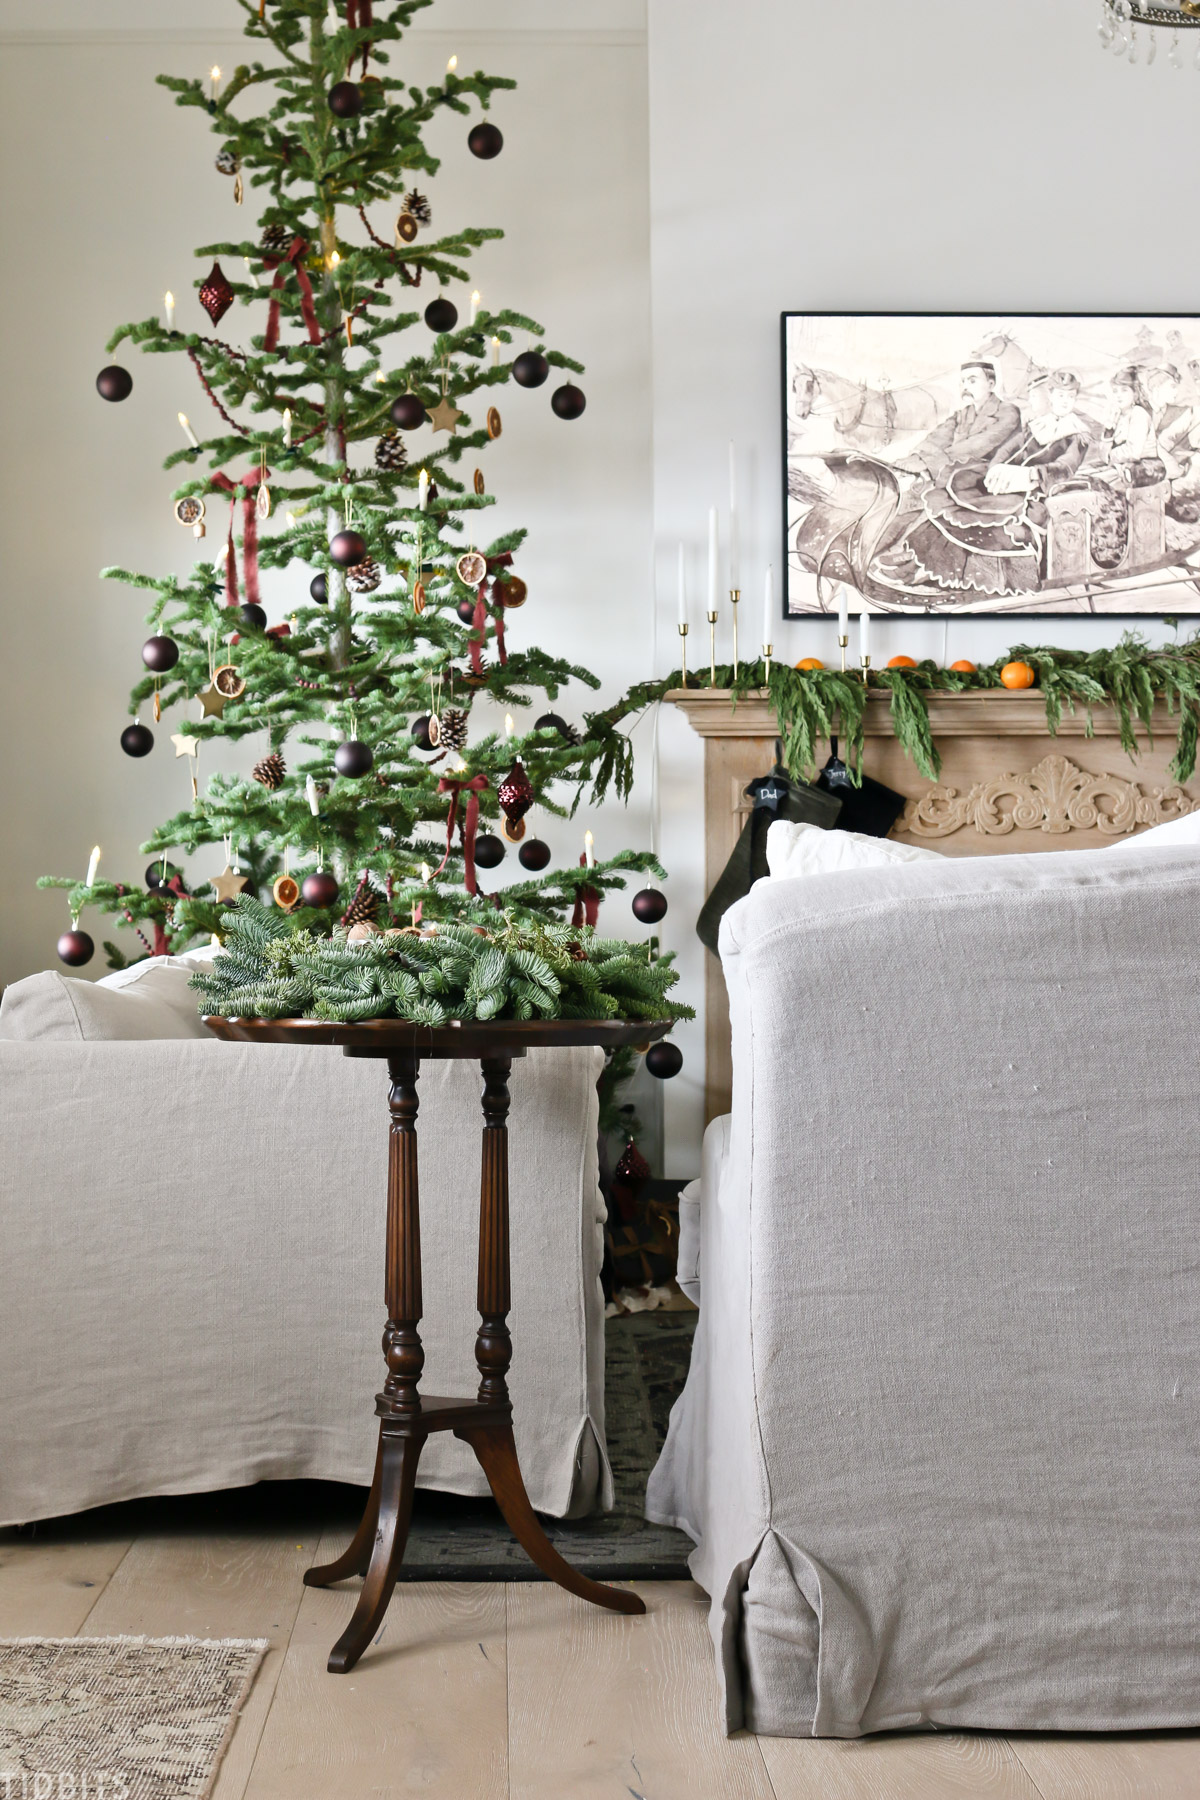 living room showing European Old World style Christmas decorations and Christmas tree